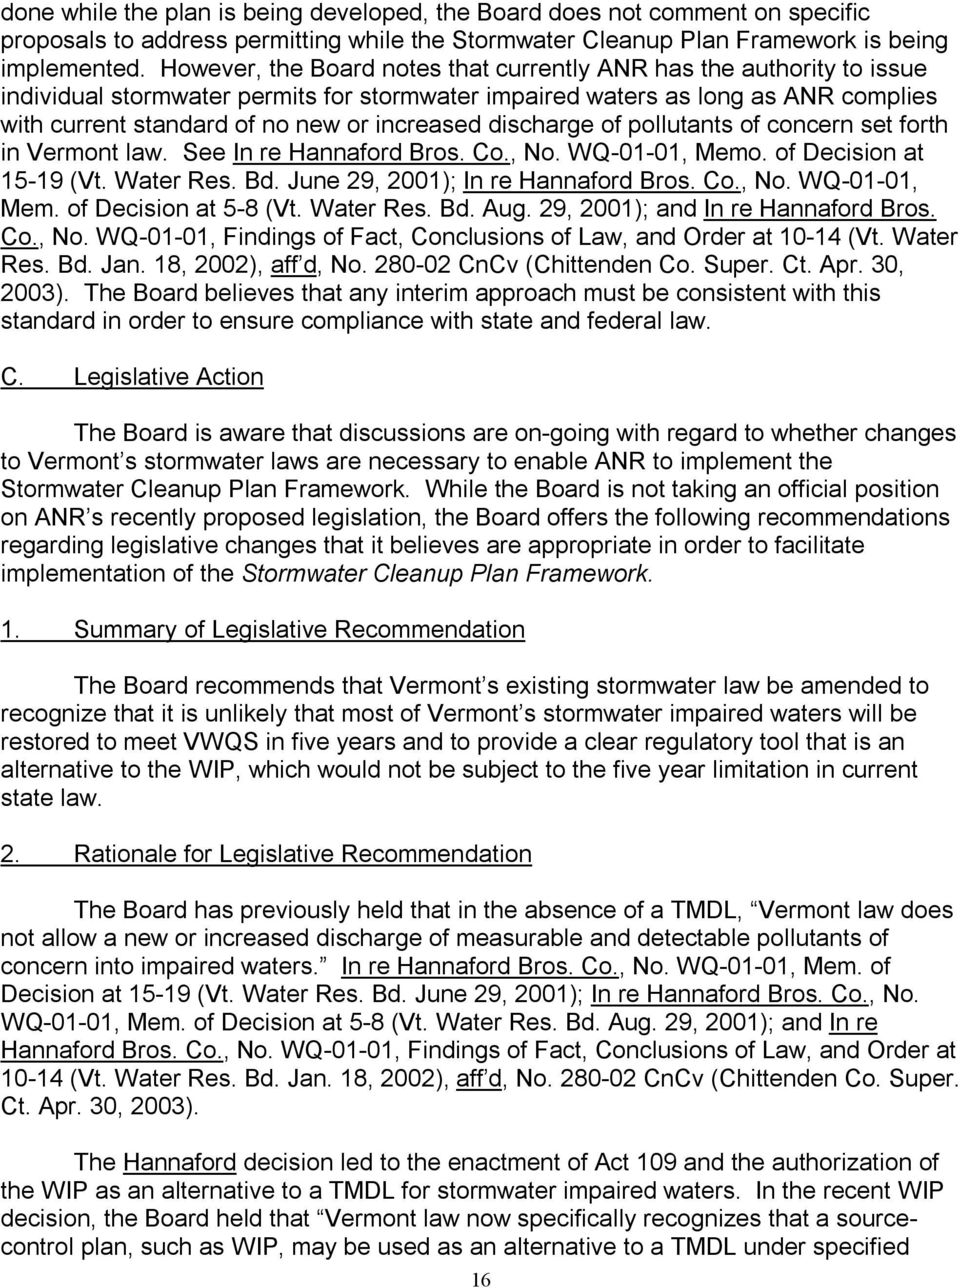 increased discharge of pollutants of concern set forth in Vermont law. See In re Hannaford Bros. Co., No. WQ-01-01, Memo. of Decision at 15-19 (Vt. Water Res. Bd. June 29, 2001); In re Hannaford Bros.